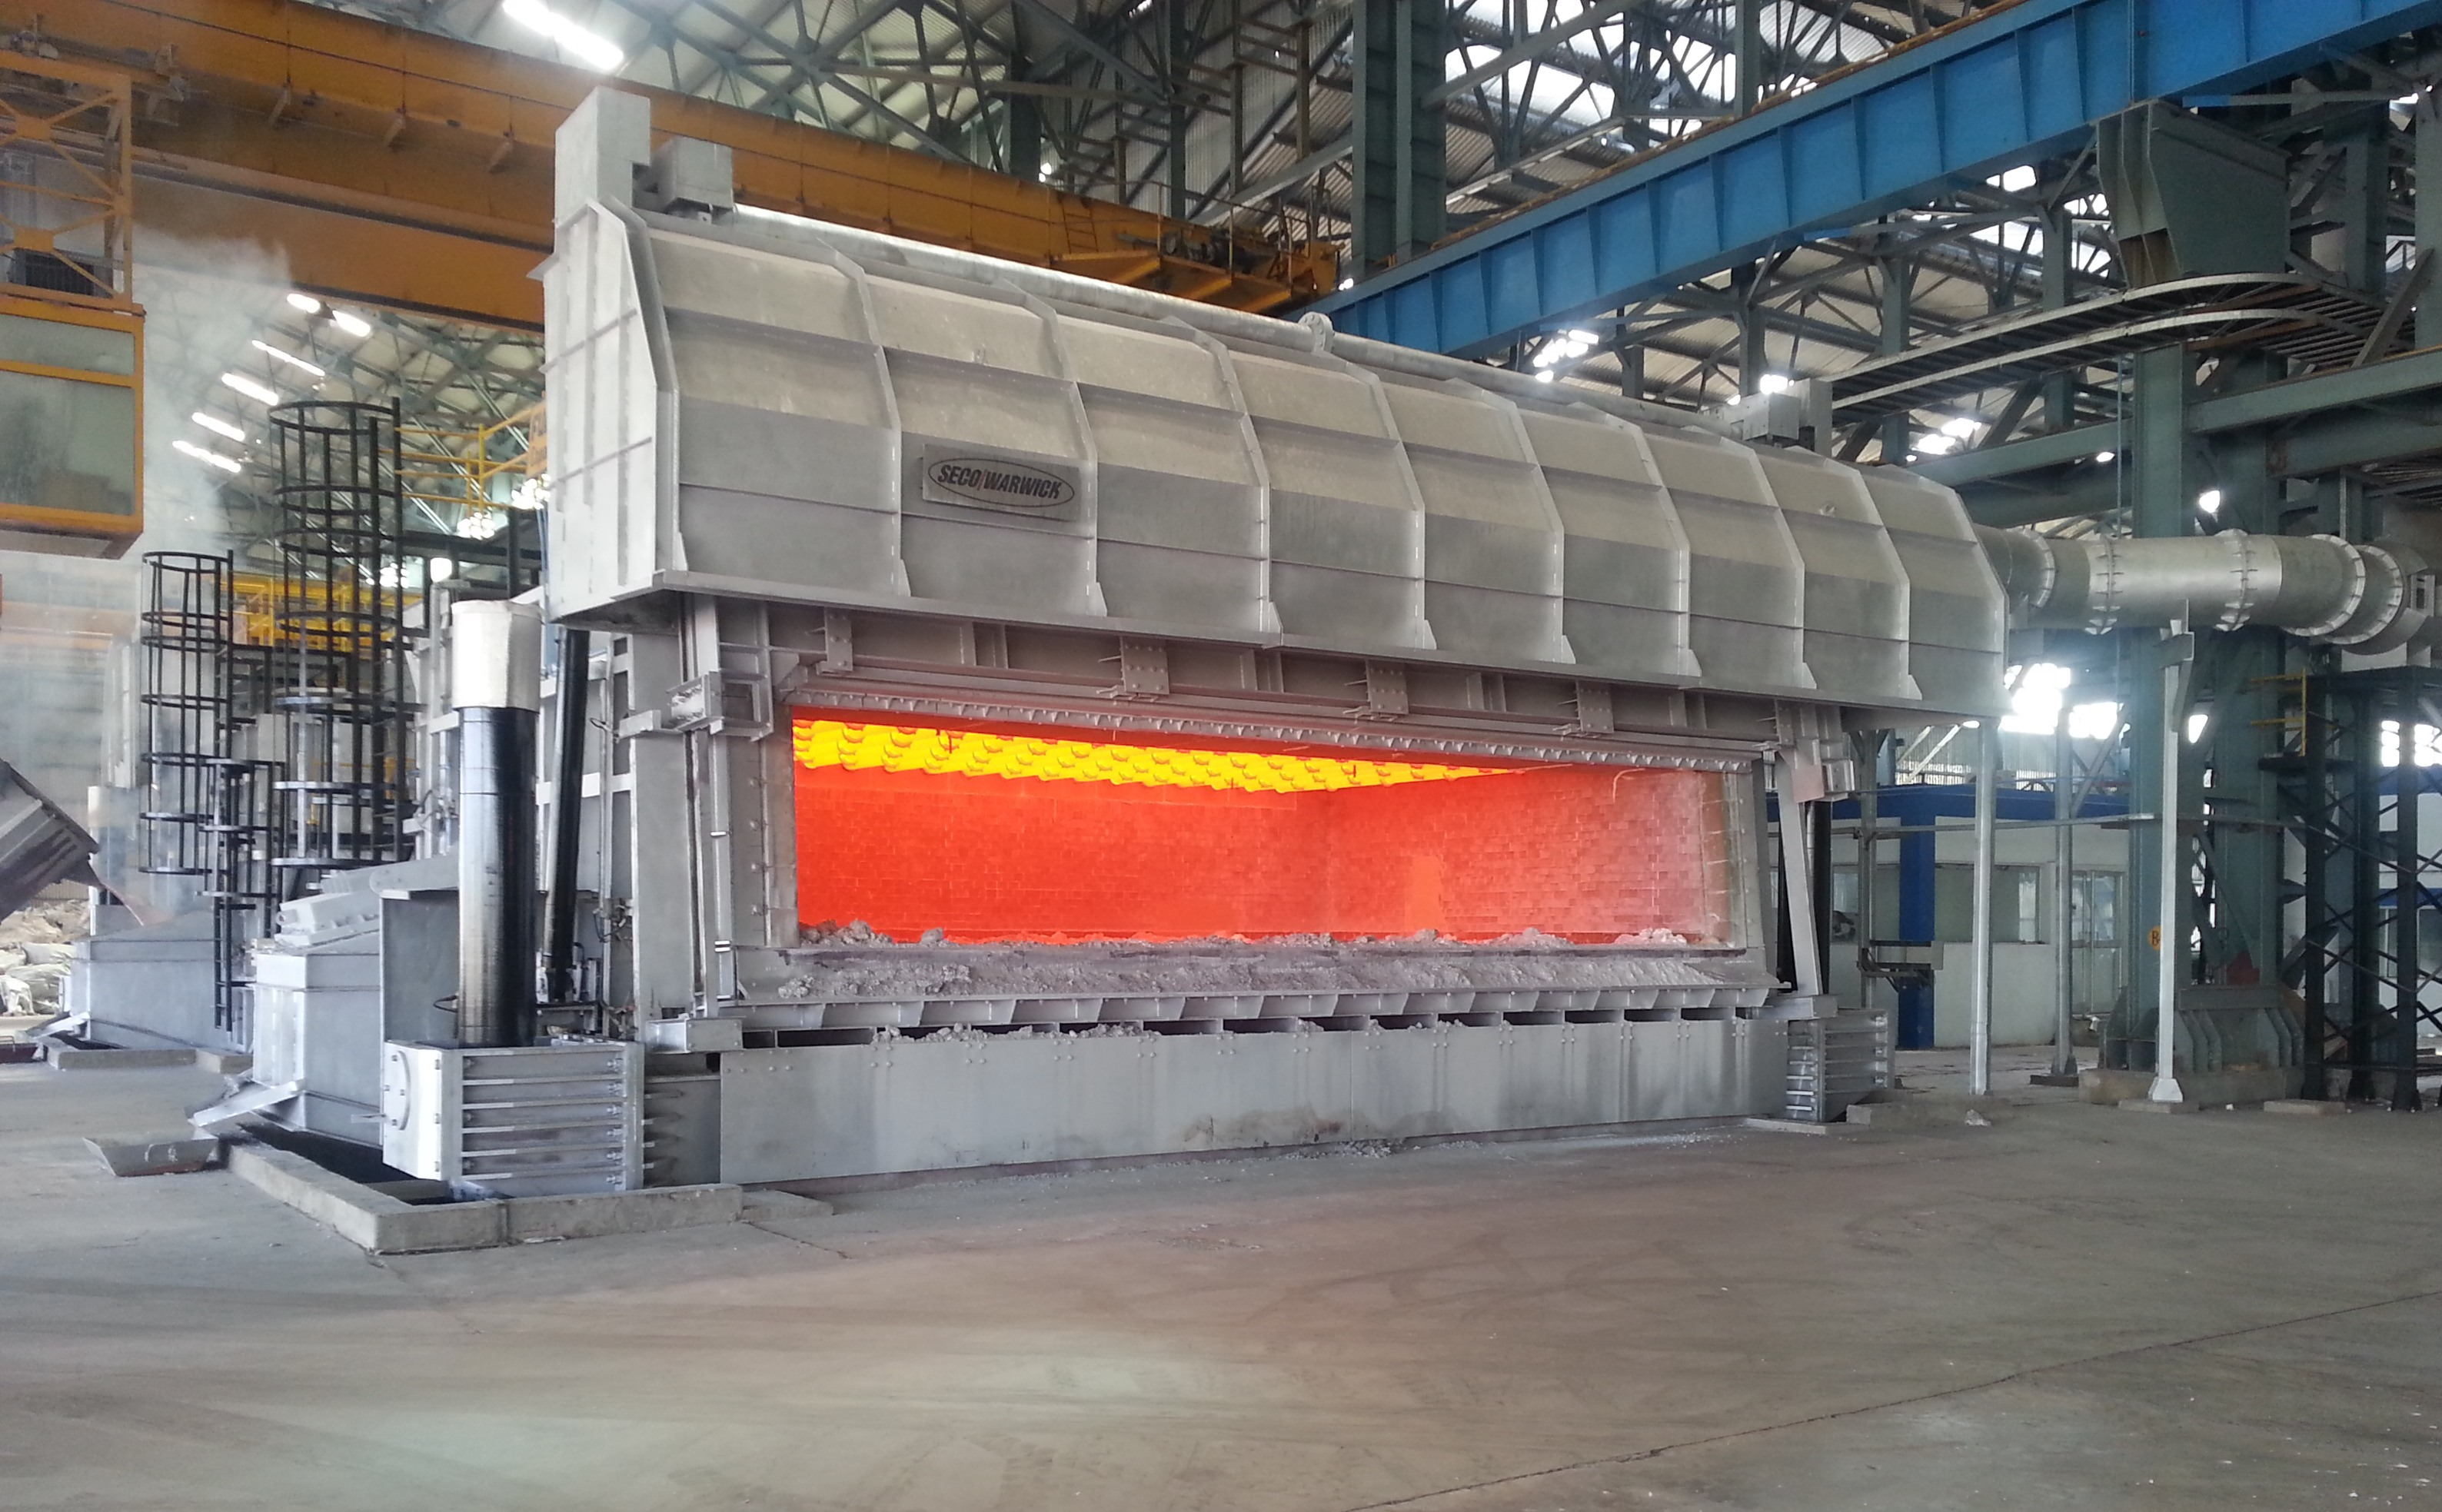 Furnace For Melting Copper Facias 15kw 30 80khz All Solid State Induction Heater Heating What Is A Foundry Metal Casting Blog